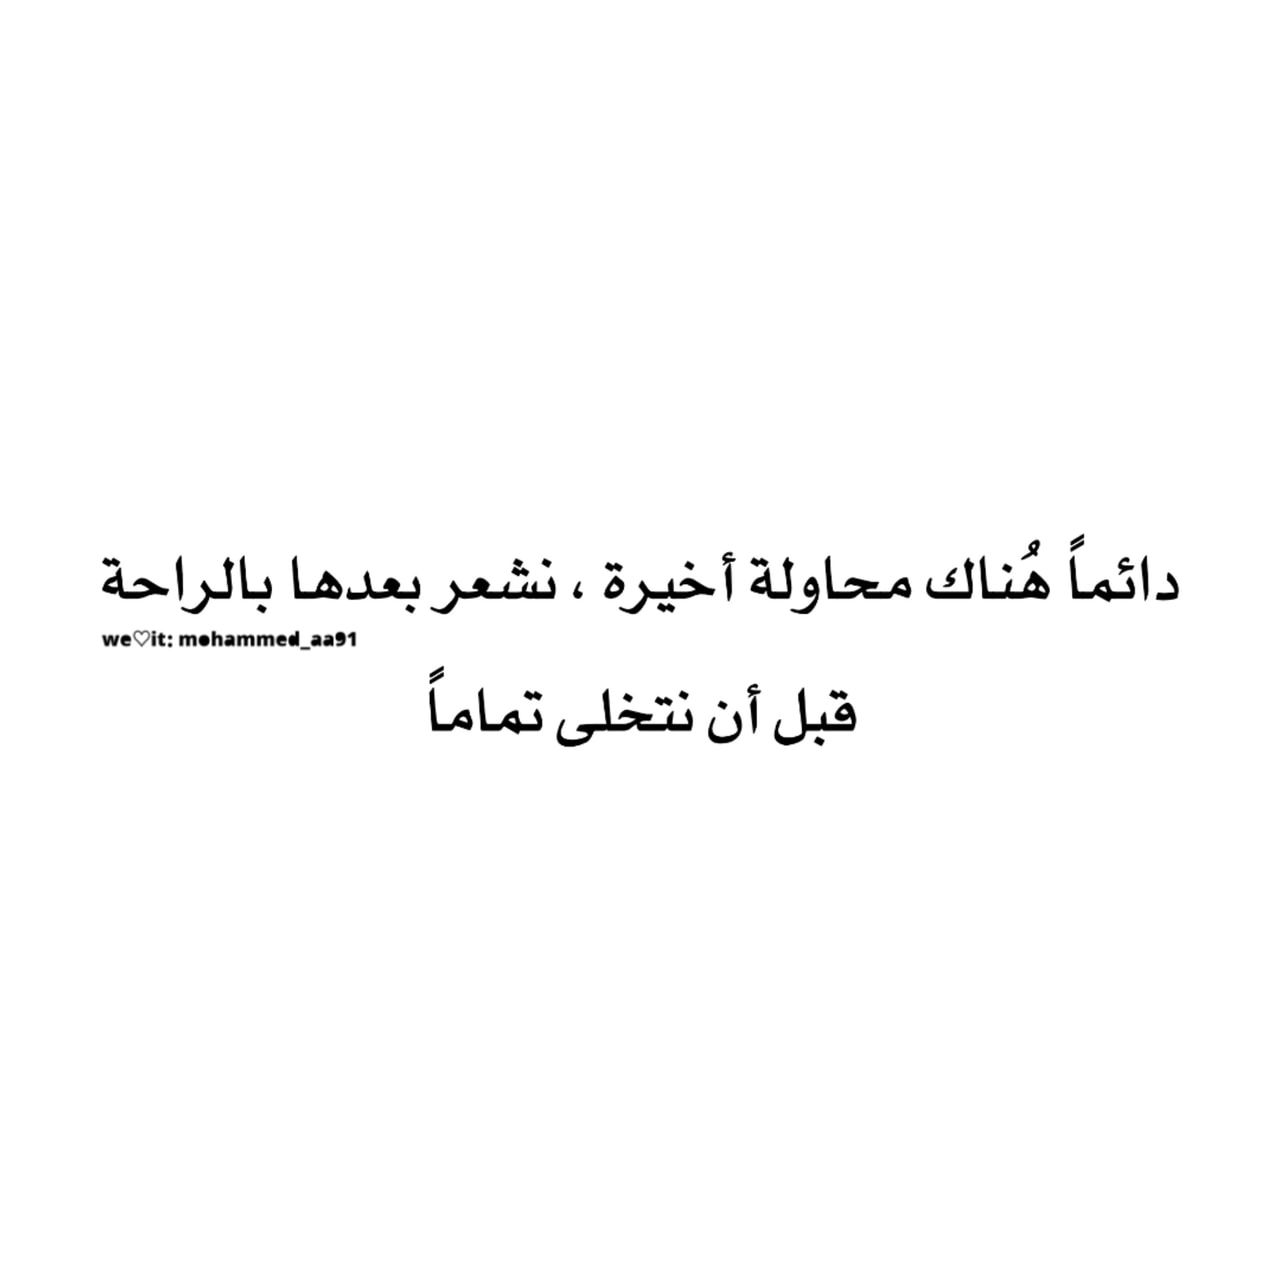 Shared By Msnammye Find Images And Videos About Text كتابات كتابة كتب كتاب And خاطرة خواطر On We Heart It The App To Get Lost I Photo Ideas Girl Text Image